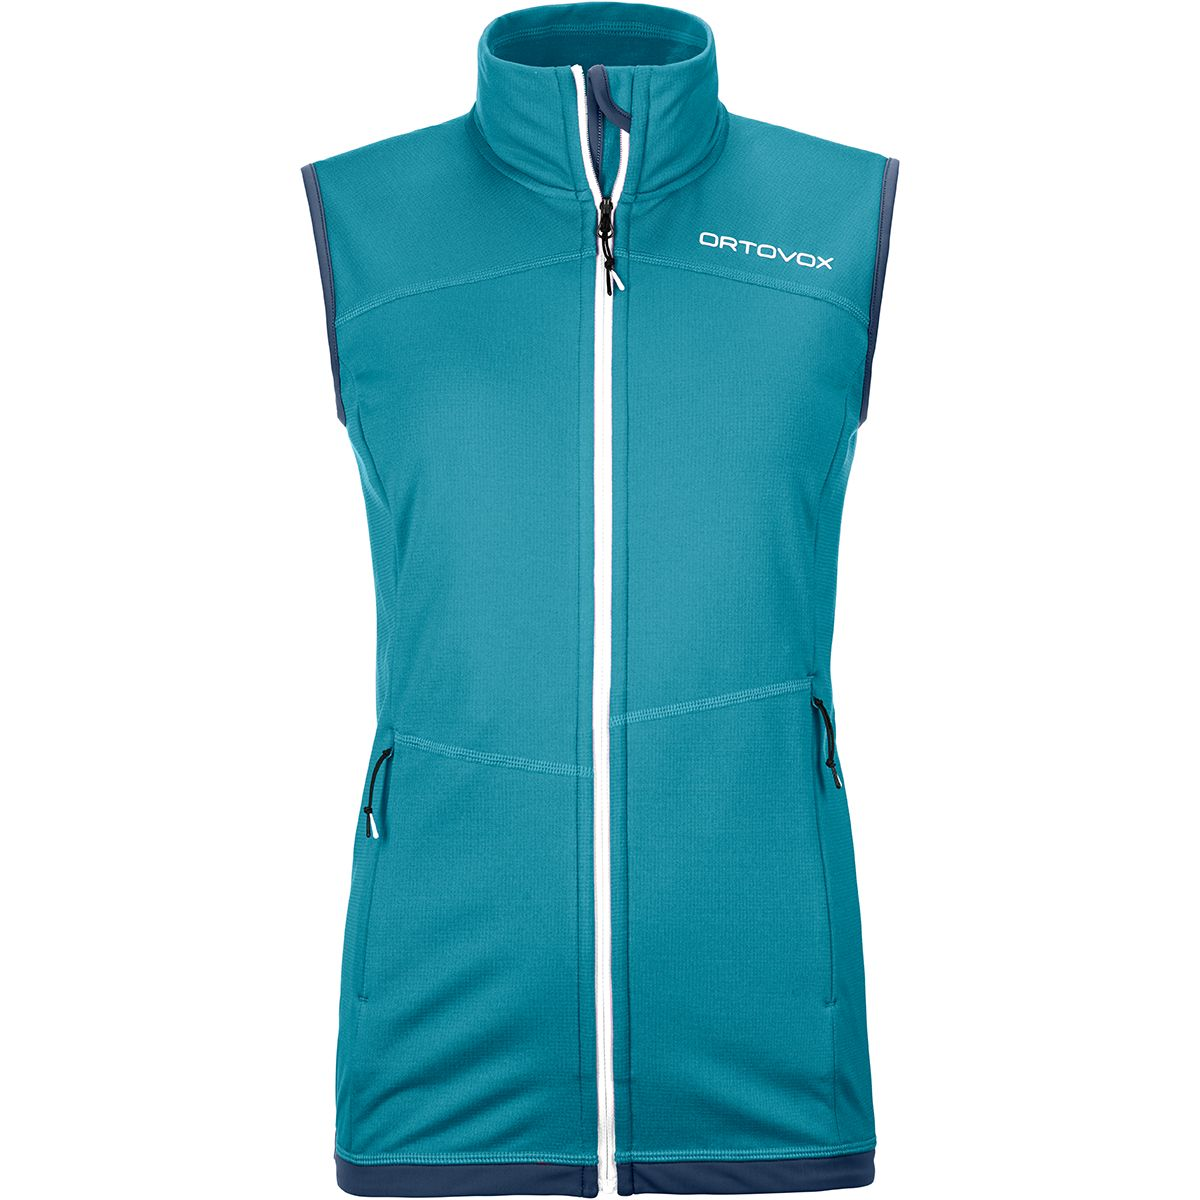 Ortovox Damen Fleece Light Weste (Größe S, Türkis) | Fleecewesten > Damen